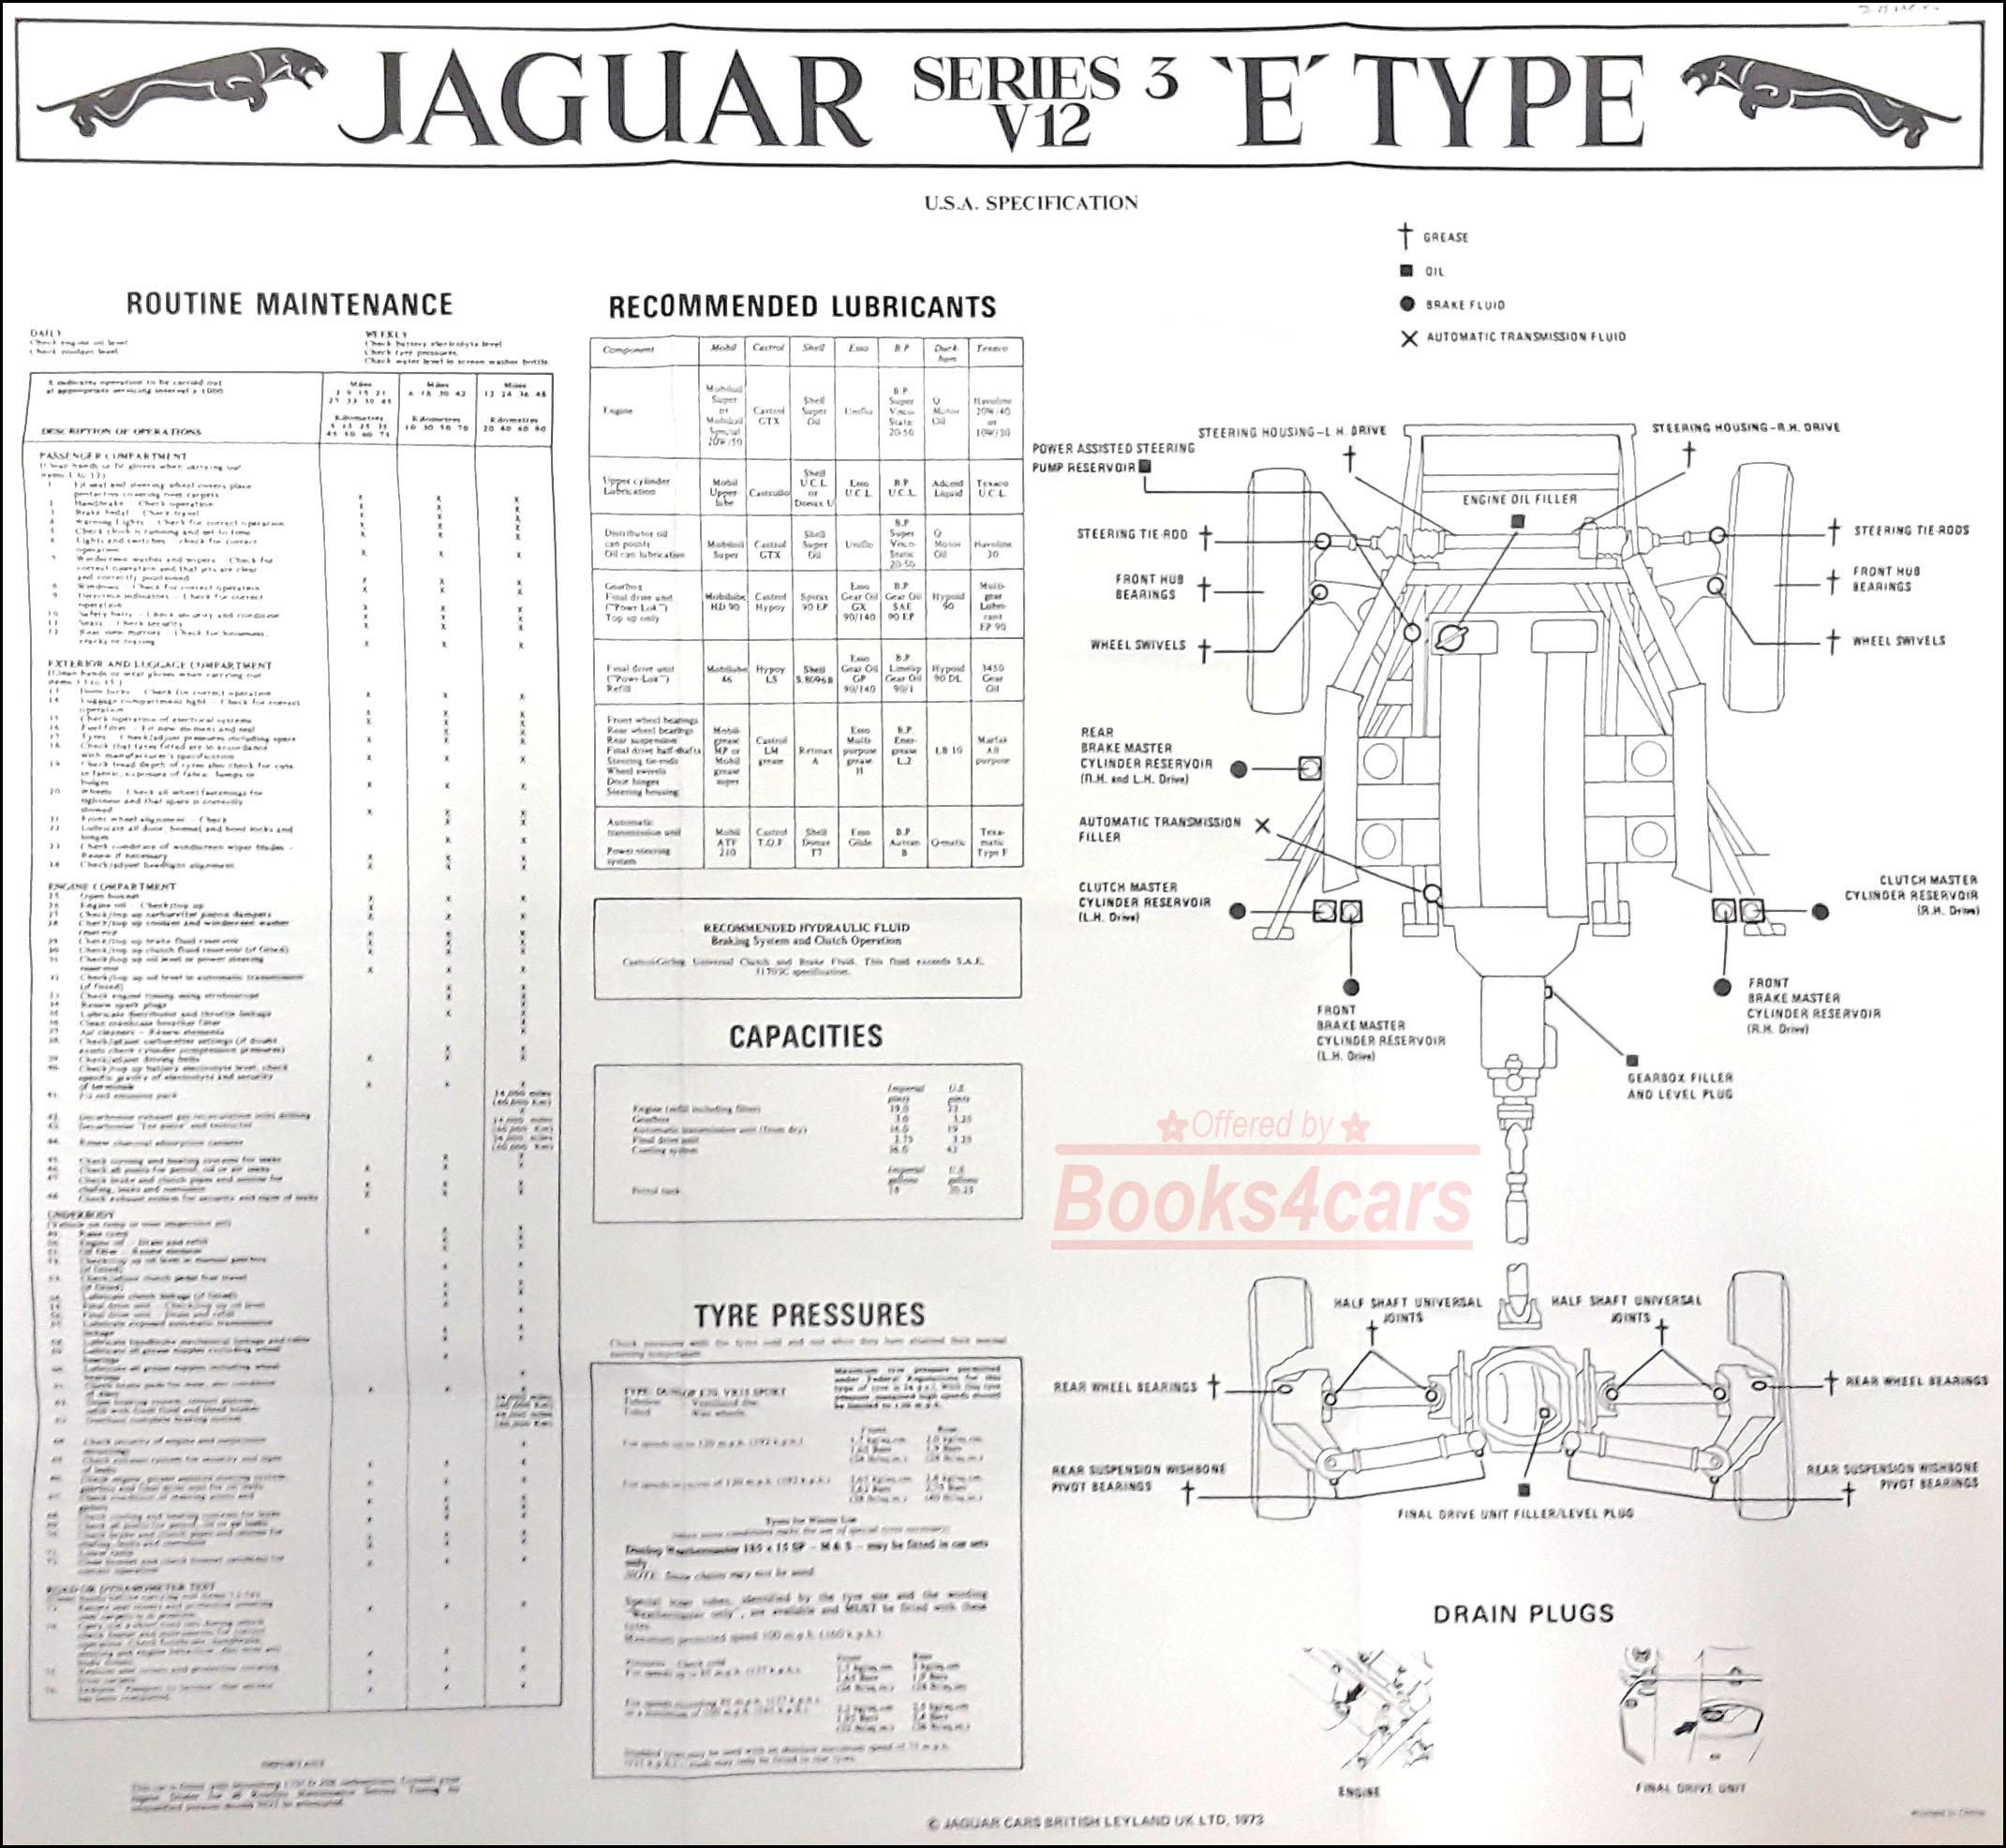 Rem Wiring Diagram Jaguar S Type Xke Electricity Basics 101 Maintenance E Electrical V12 S3 1971 1975 Ebay Rh Com 38